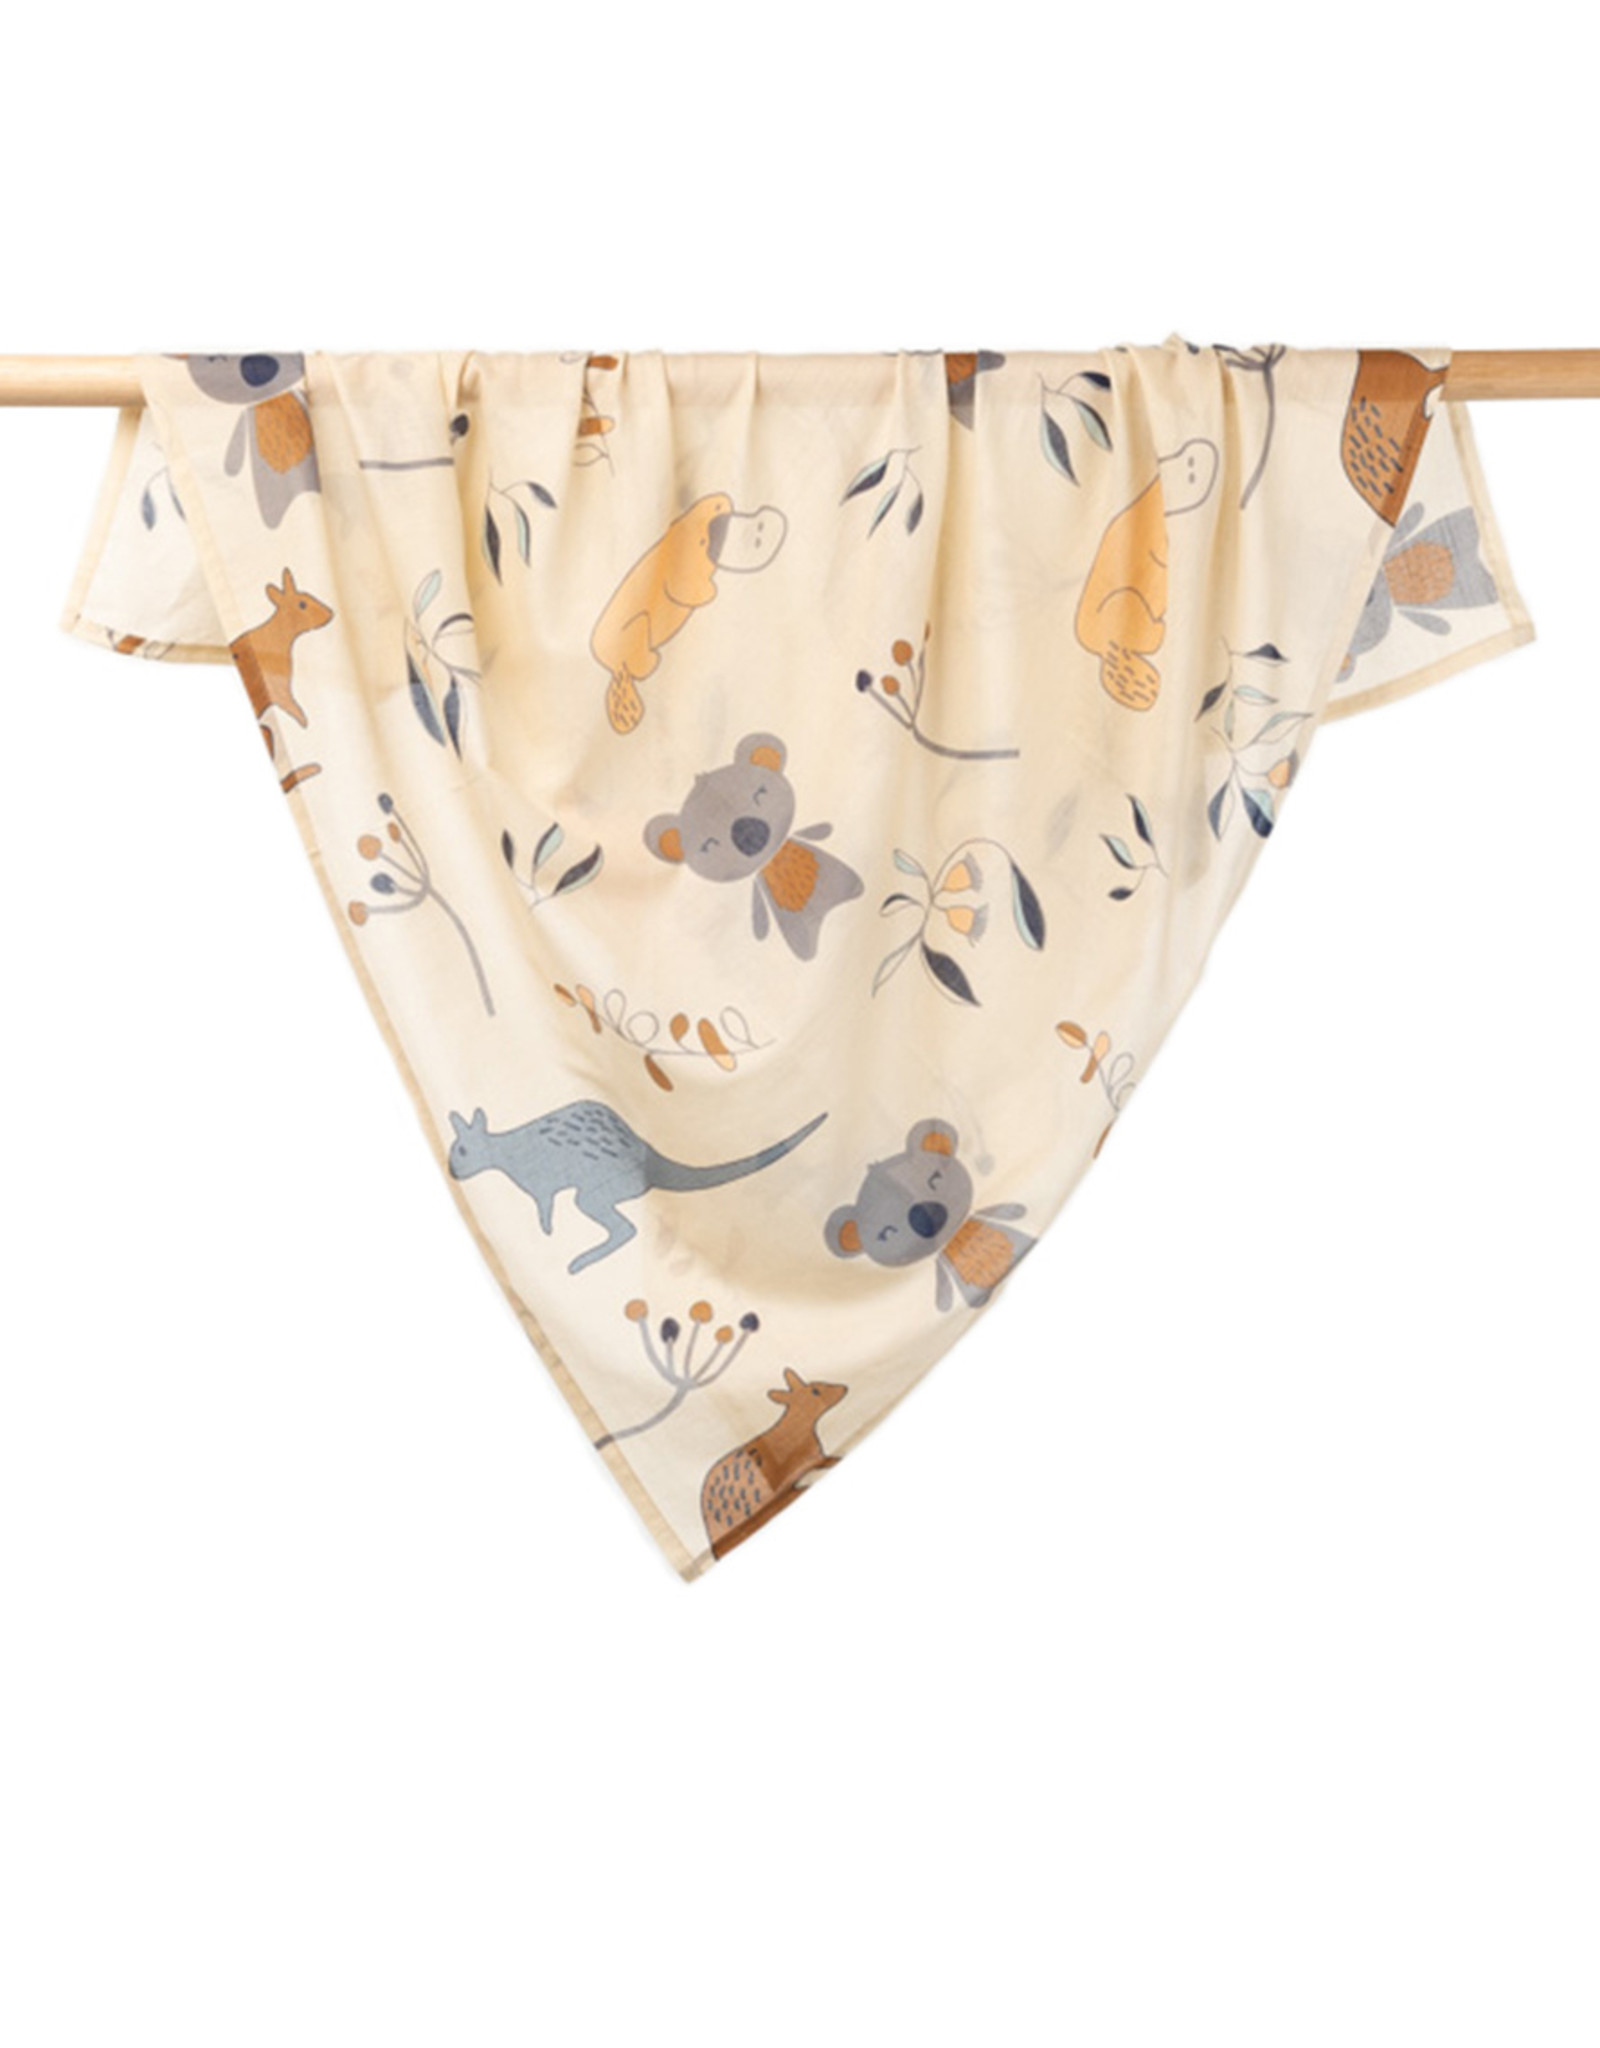 Indus Design Indus - Outback Baby Swaddle